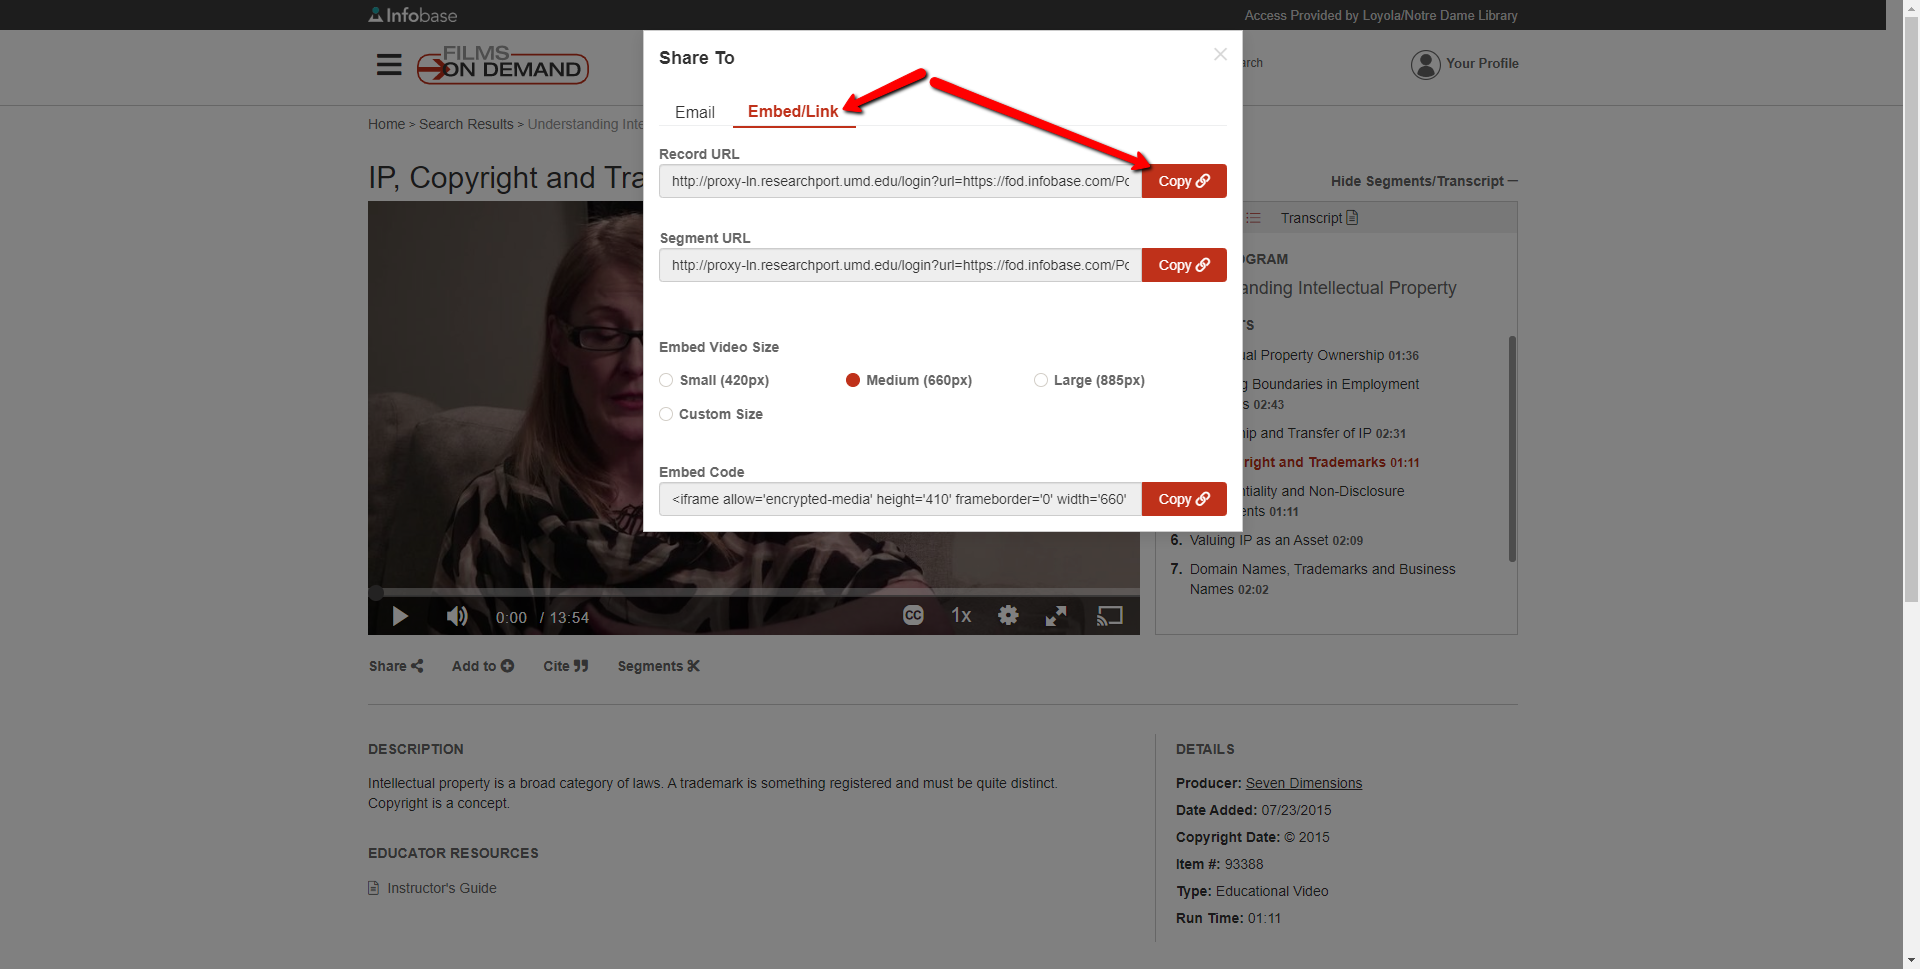 Link options for embedding Films on Demand links includes Record URL, Segement URL, and embed code.